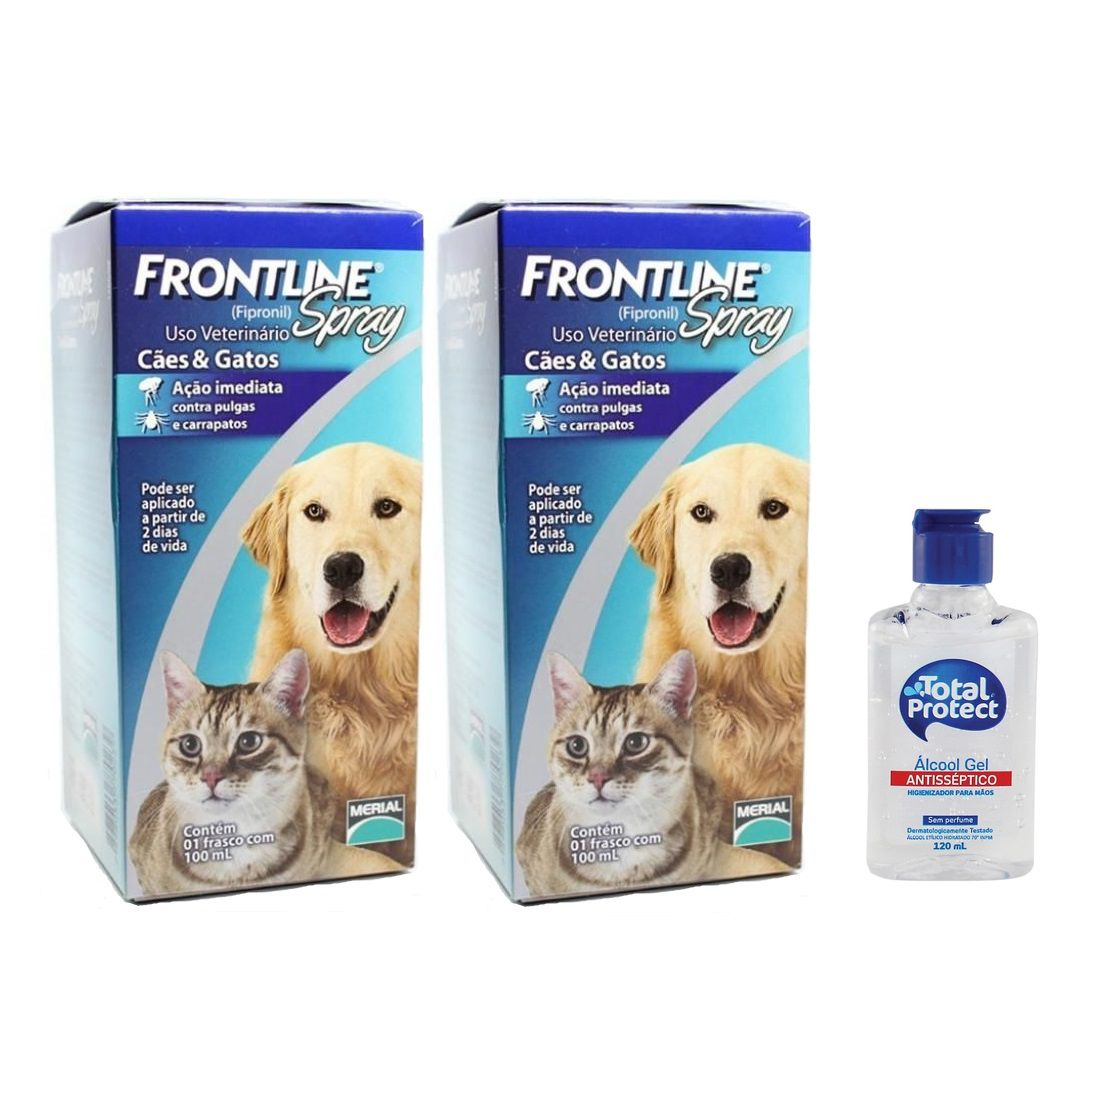 Kit 2 Unidades Antipulgas e Carrapatos para Cães e Gatos Frontline Spray 100ml - Merial + Brinde Álcool Gel 120ml Total Protect